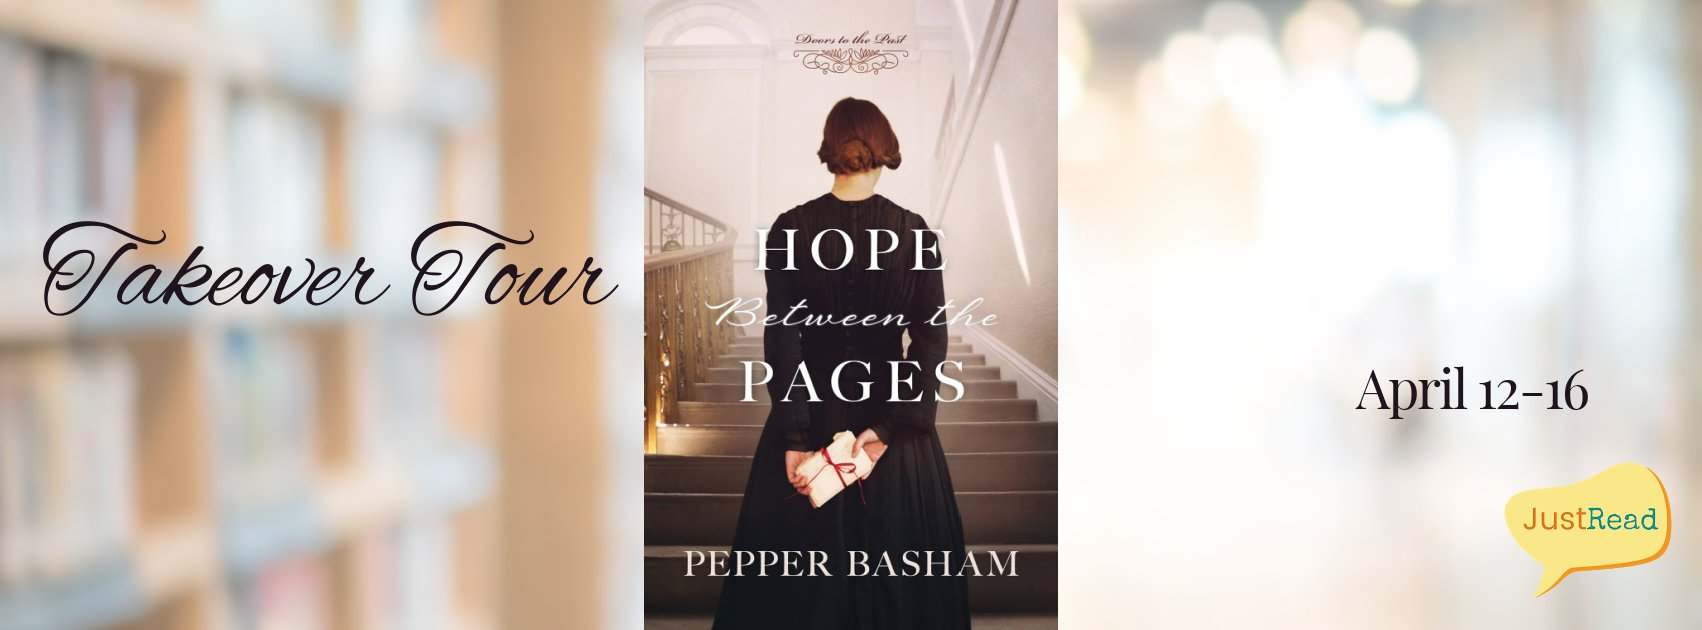 Welcome to Hope Between the Pages Takeover Tour & Giveaway!